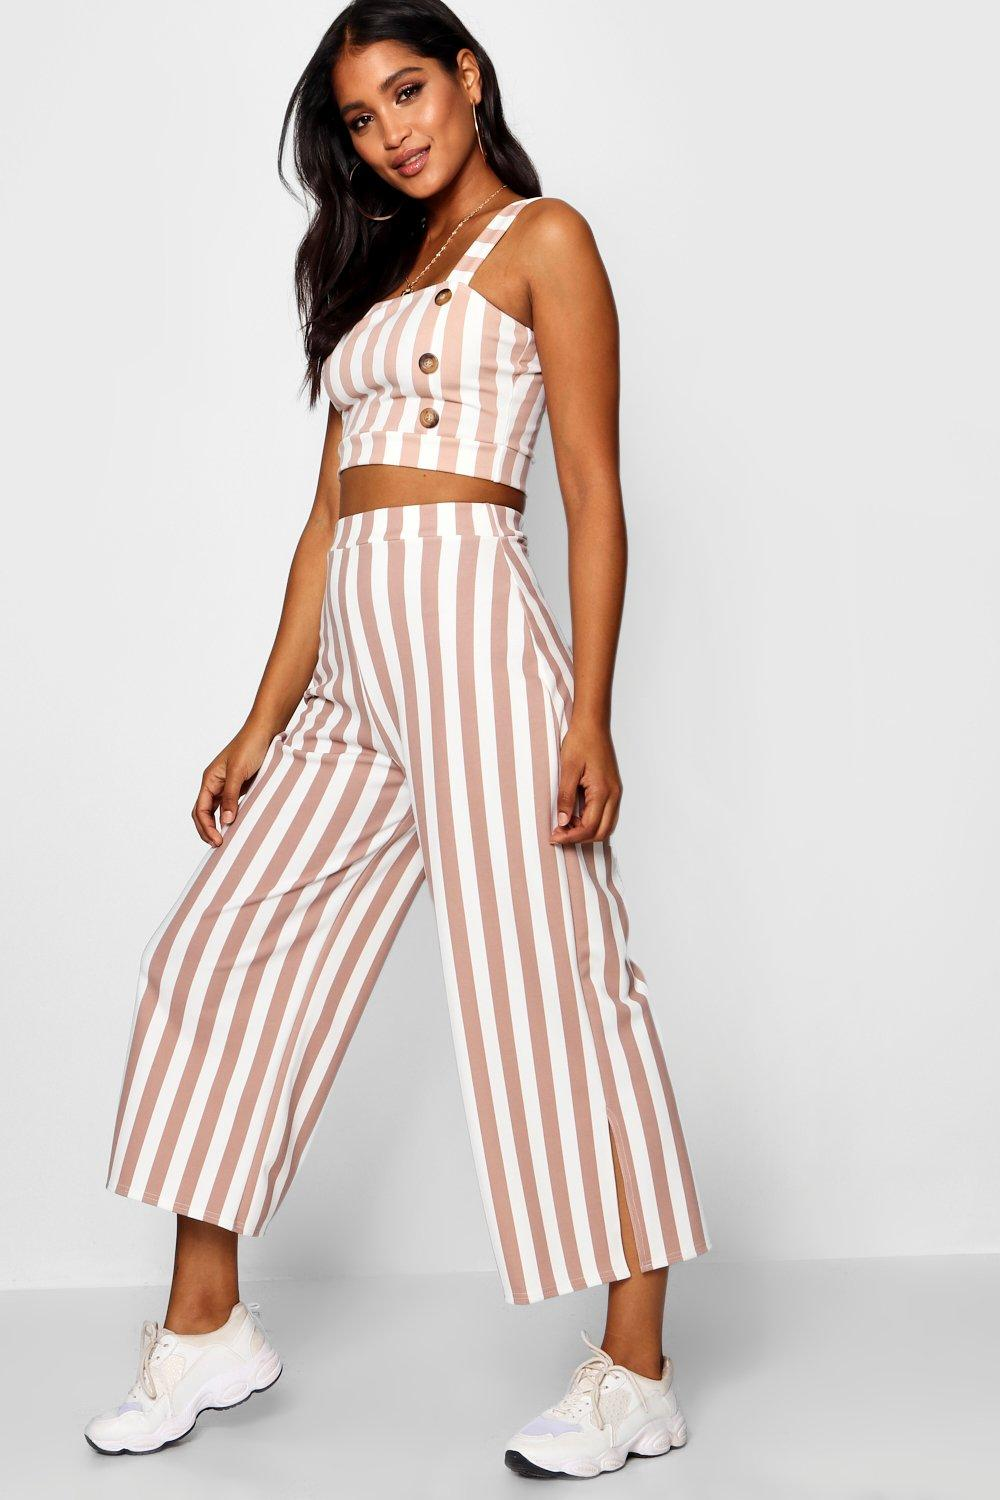 Trouser Stripe Bralet Square Neck Co ord pink trwrFEqx